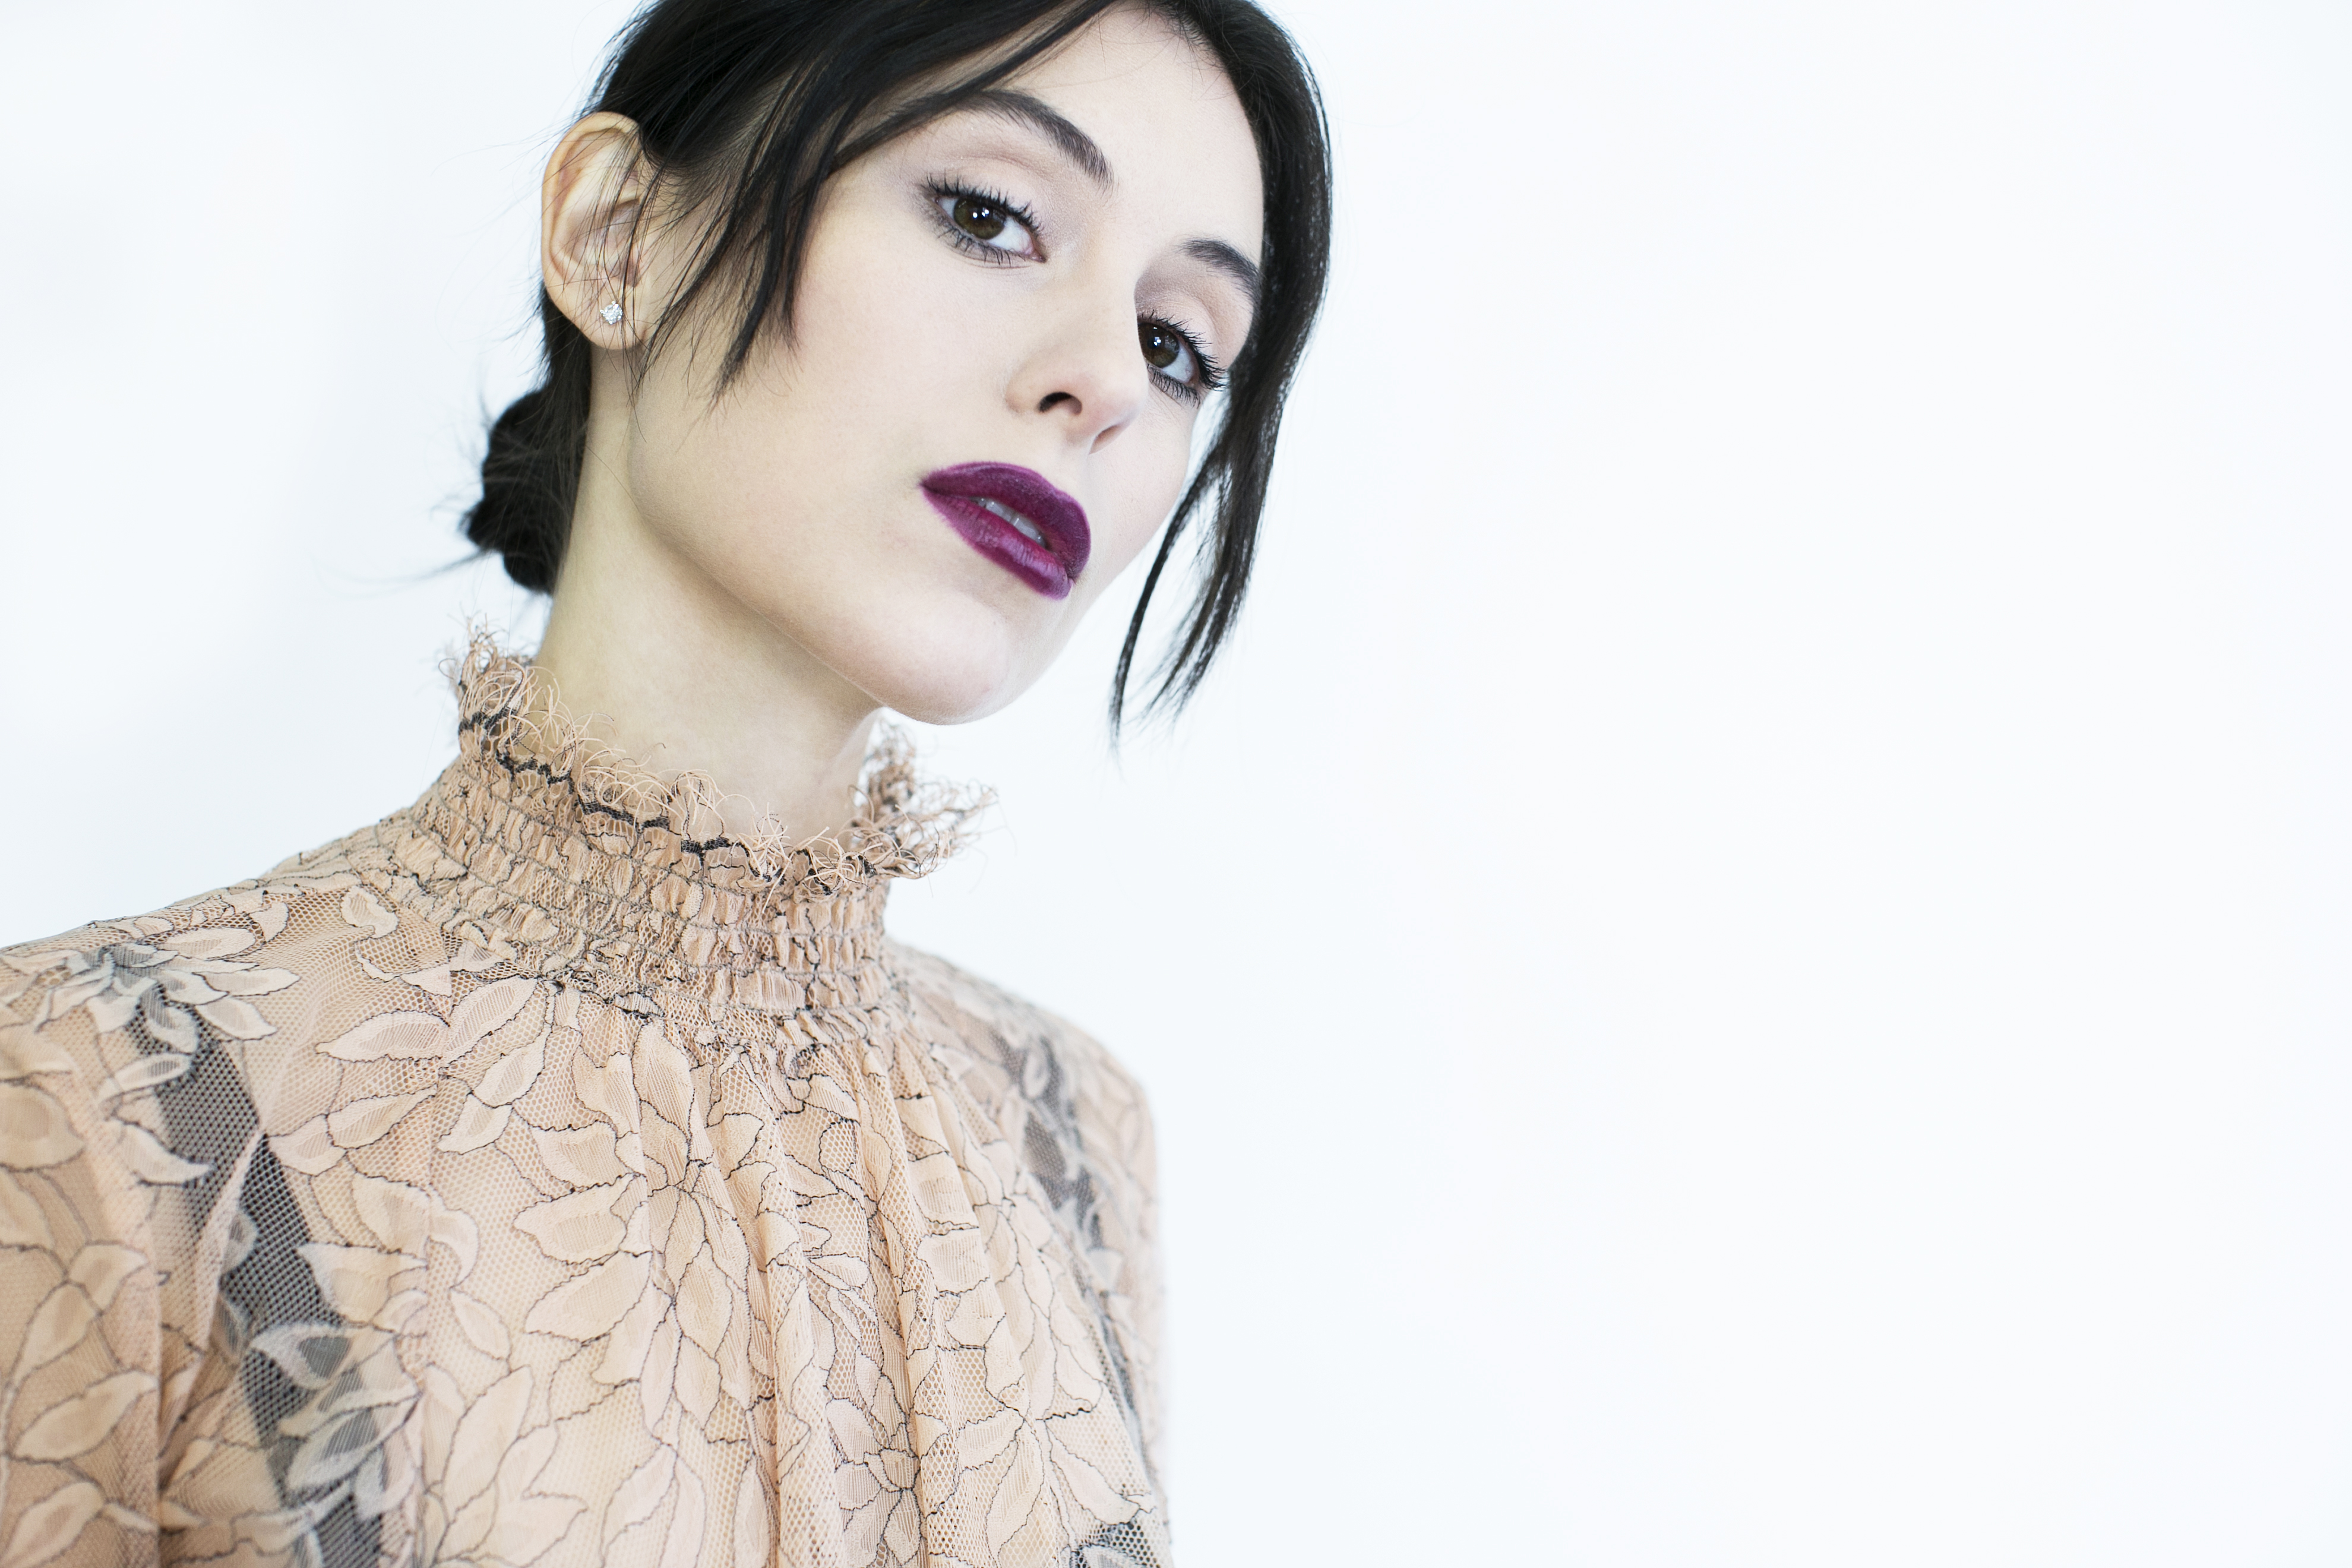 Actres and influencer Marta Pozzan in L'Oreal makeup.